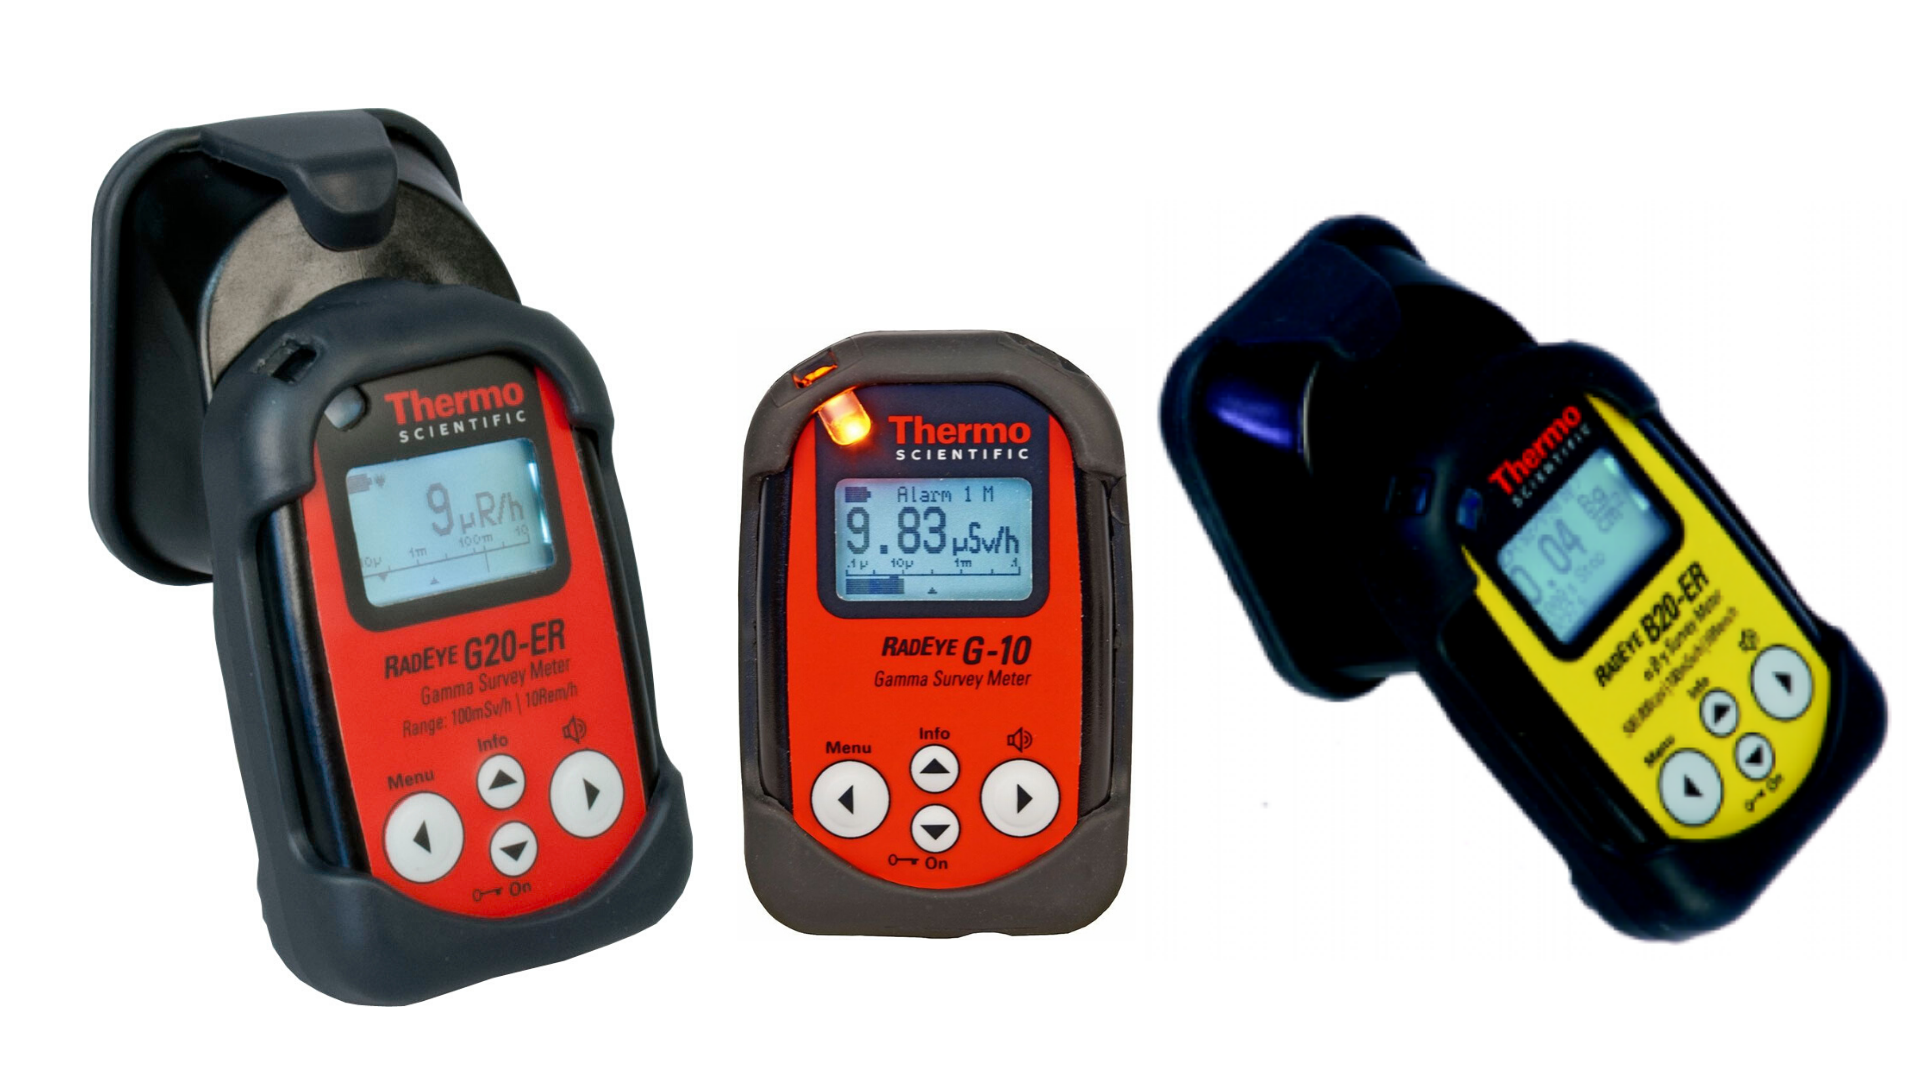 The Latest Geiger Counters